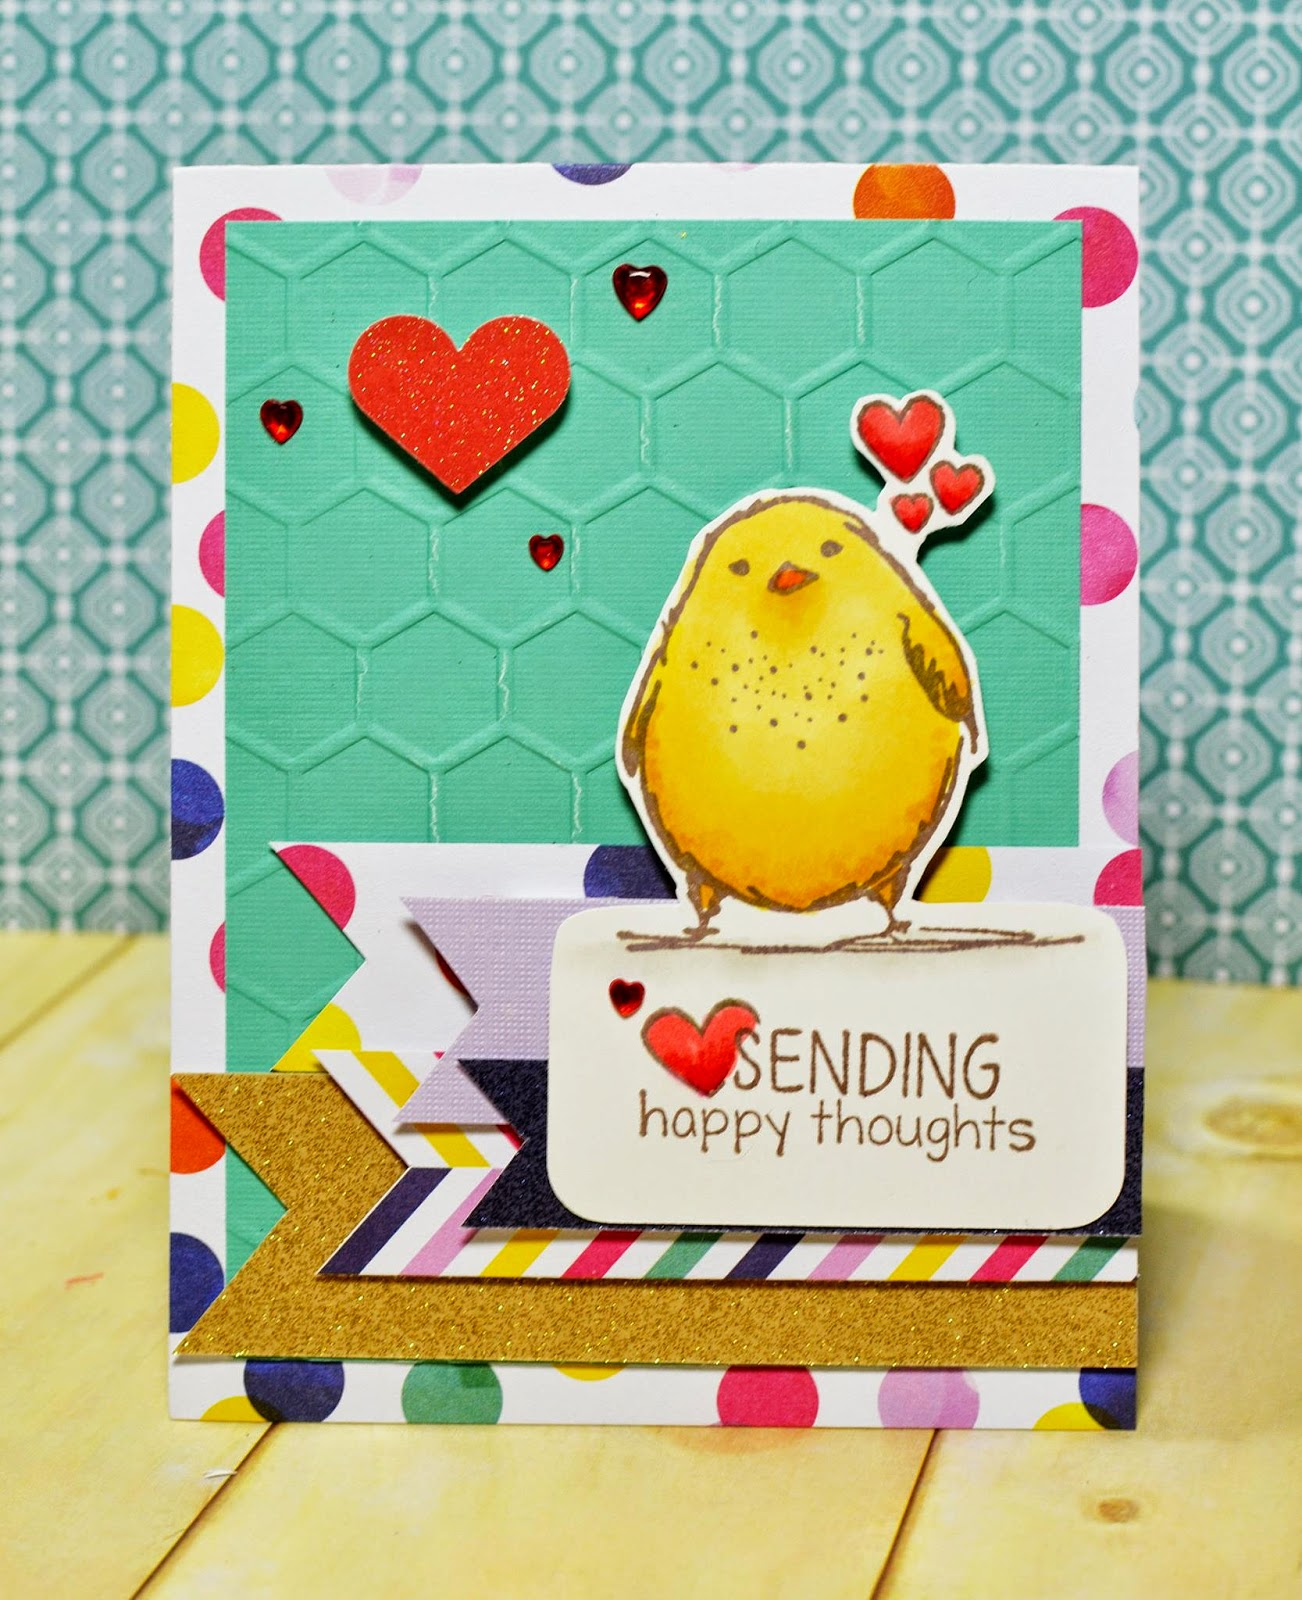 http://pinkpapercrowns.blogspot.ca/2015/03/one-cute-chick.html